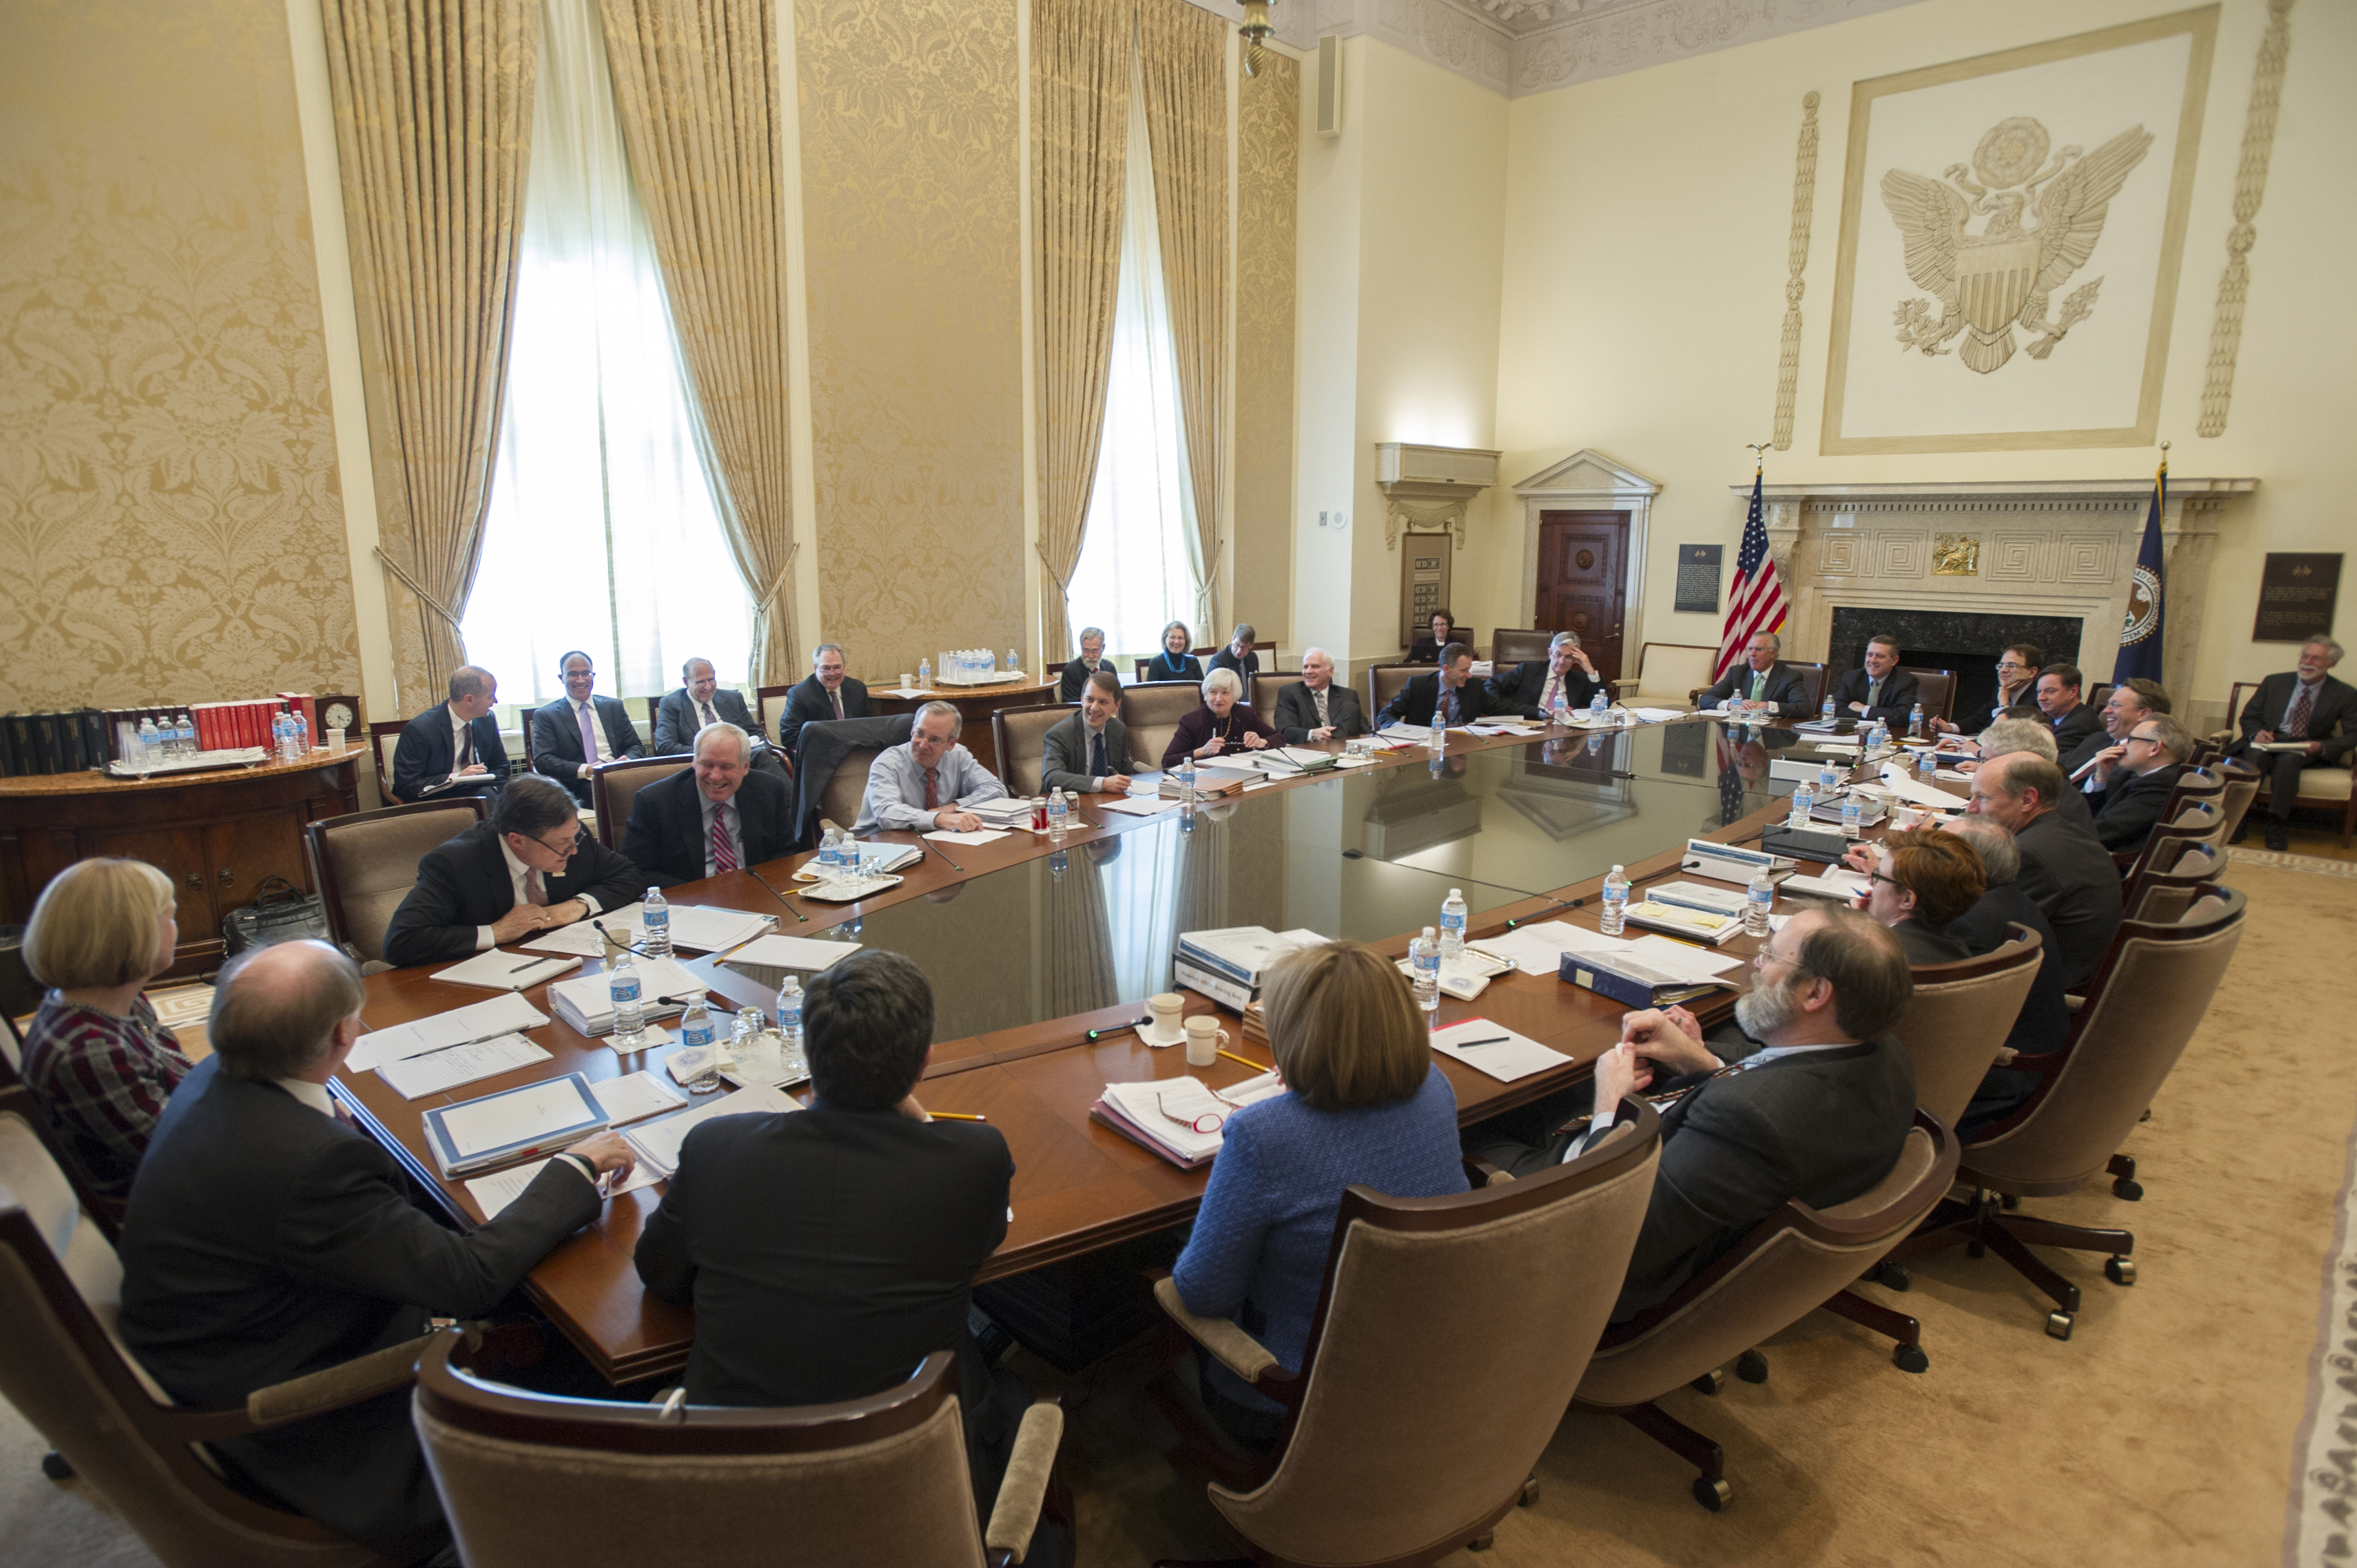 Federal Open Market Committee (FOMC) participants gather at the Marriner S. Eccles Building in Washington, D.C., for a two-day meeting held on March 18-19, 2014.